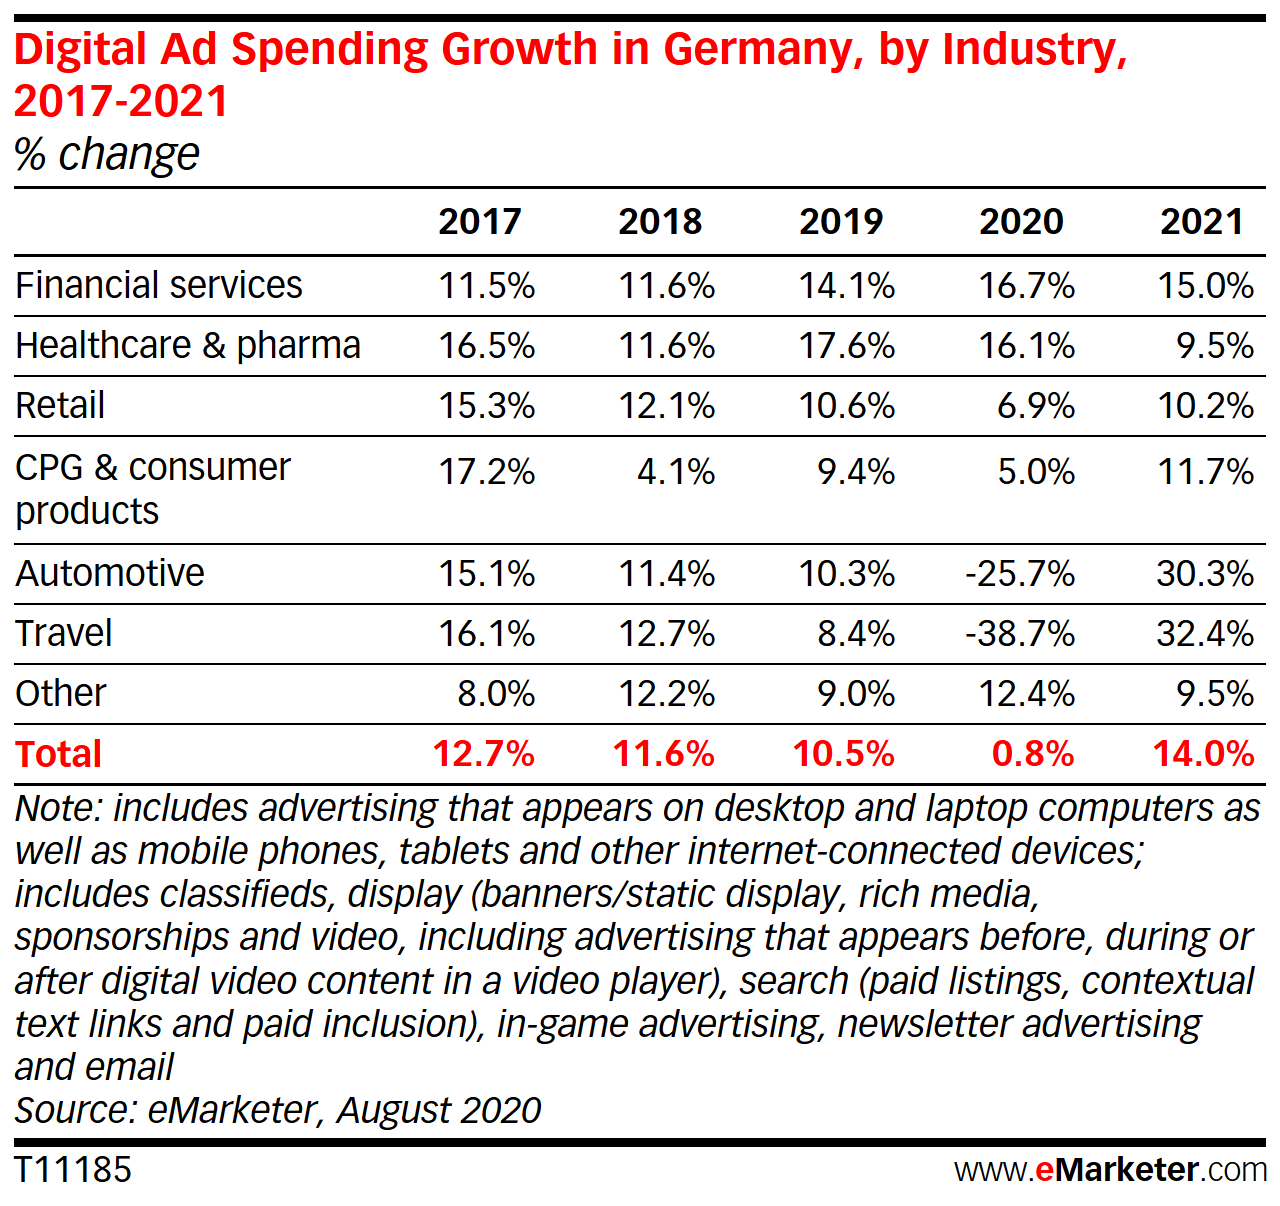 Digital Ad Spending Growth in Germany, by Industry, 2017-2021 (% change)